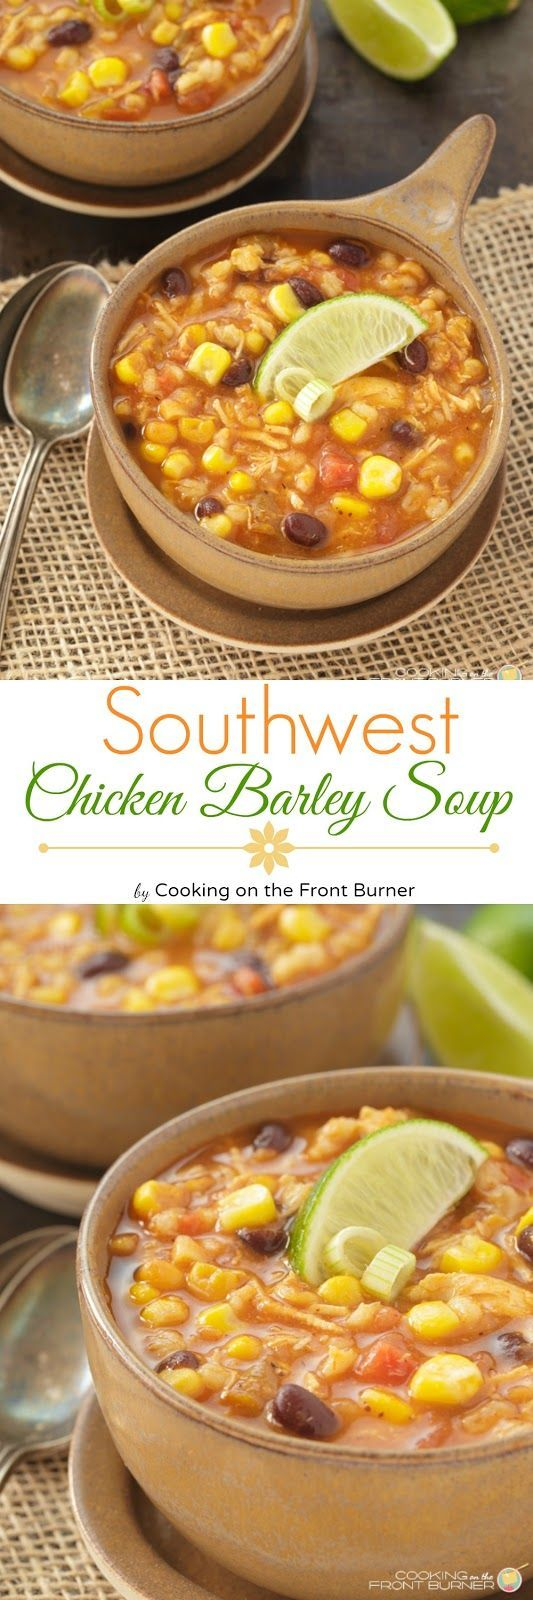 Southwest Chicken Barley Soup ~ Chocked full of wonderful ingredients! A great comfort dish!